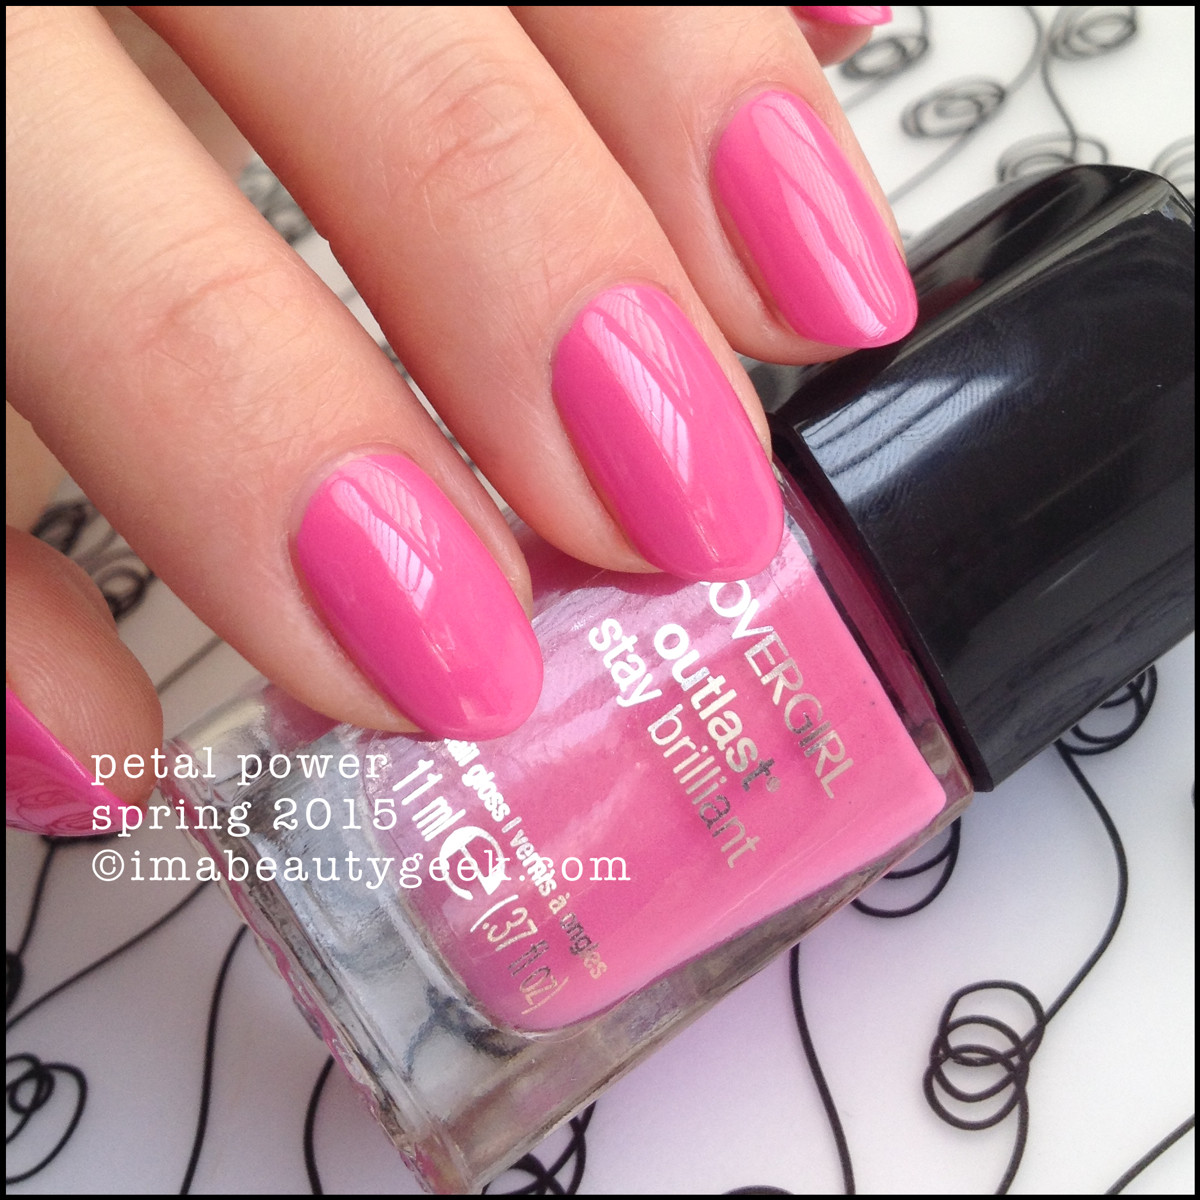 CoverGirl Nails Spring 2015_CoverGirl Petal Power Outlast